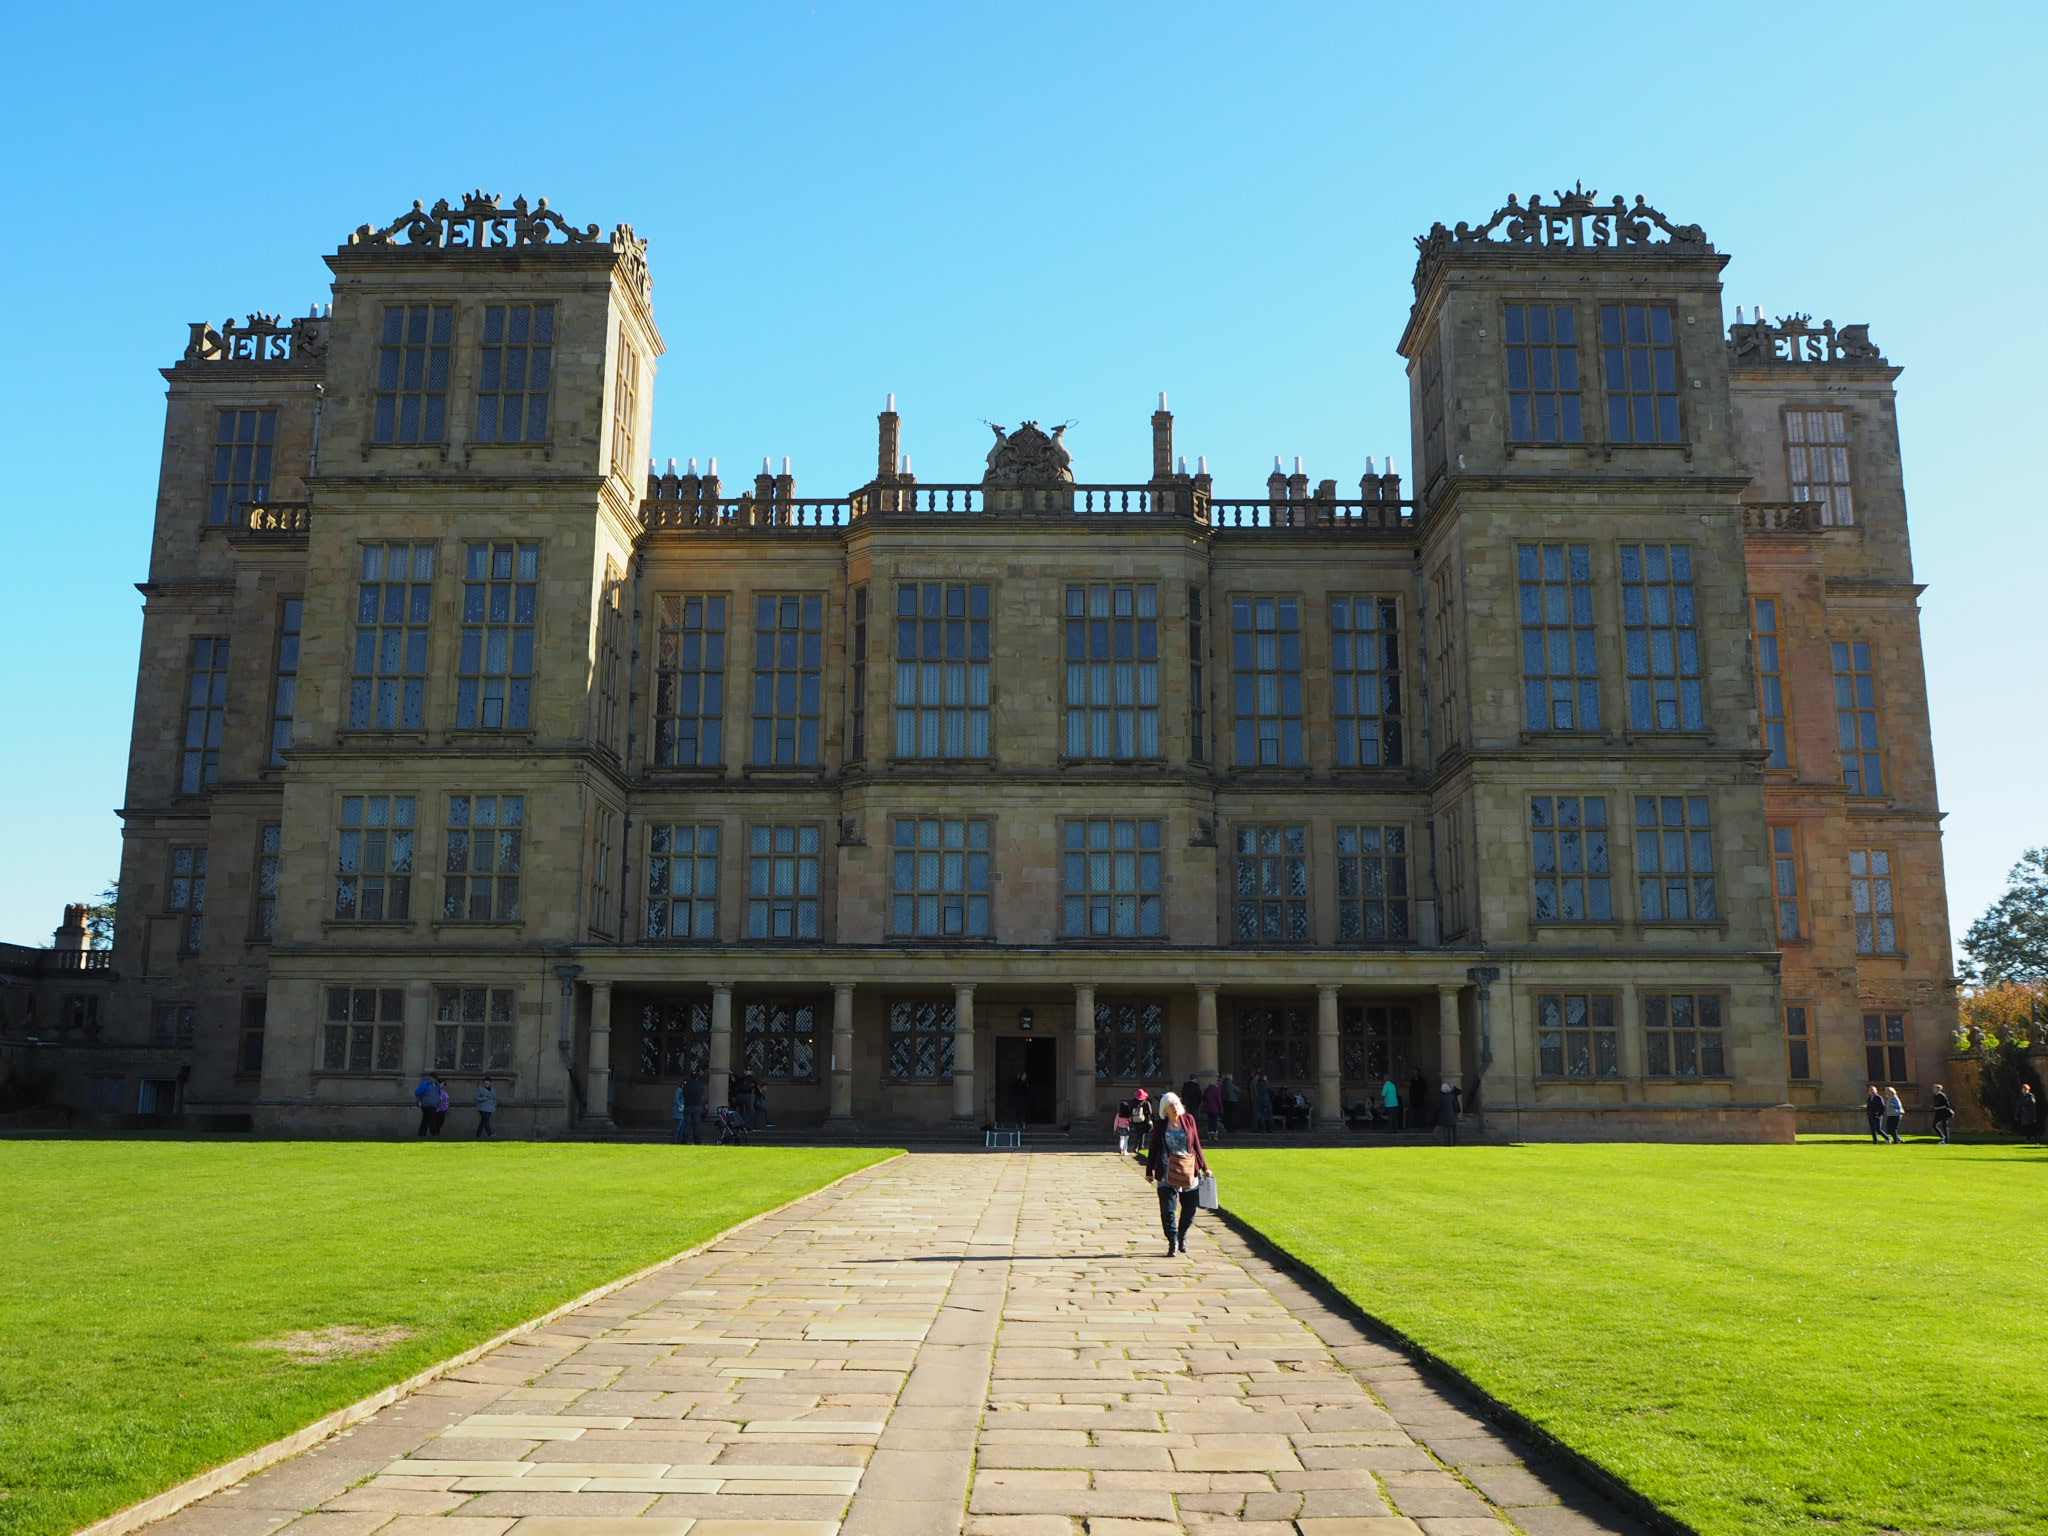 Hardwick Hall – More Glass than Wall